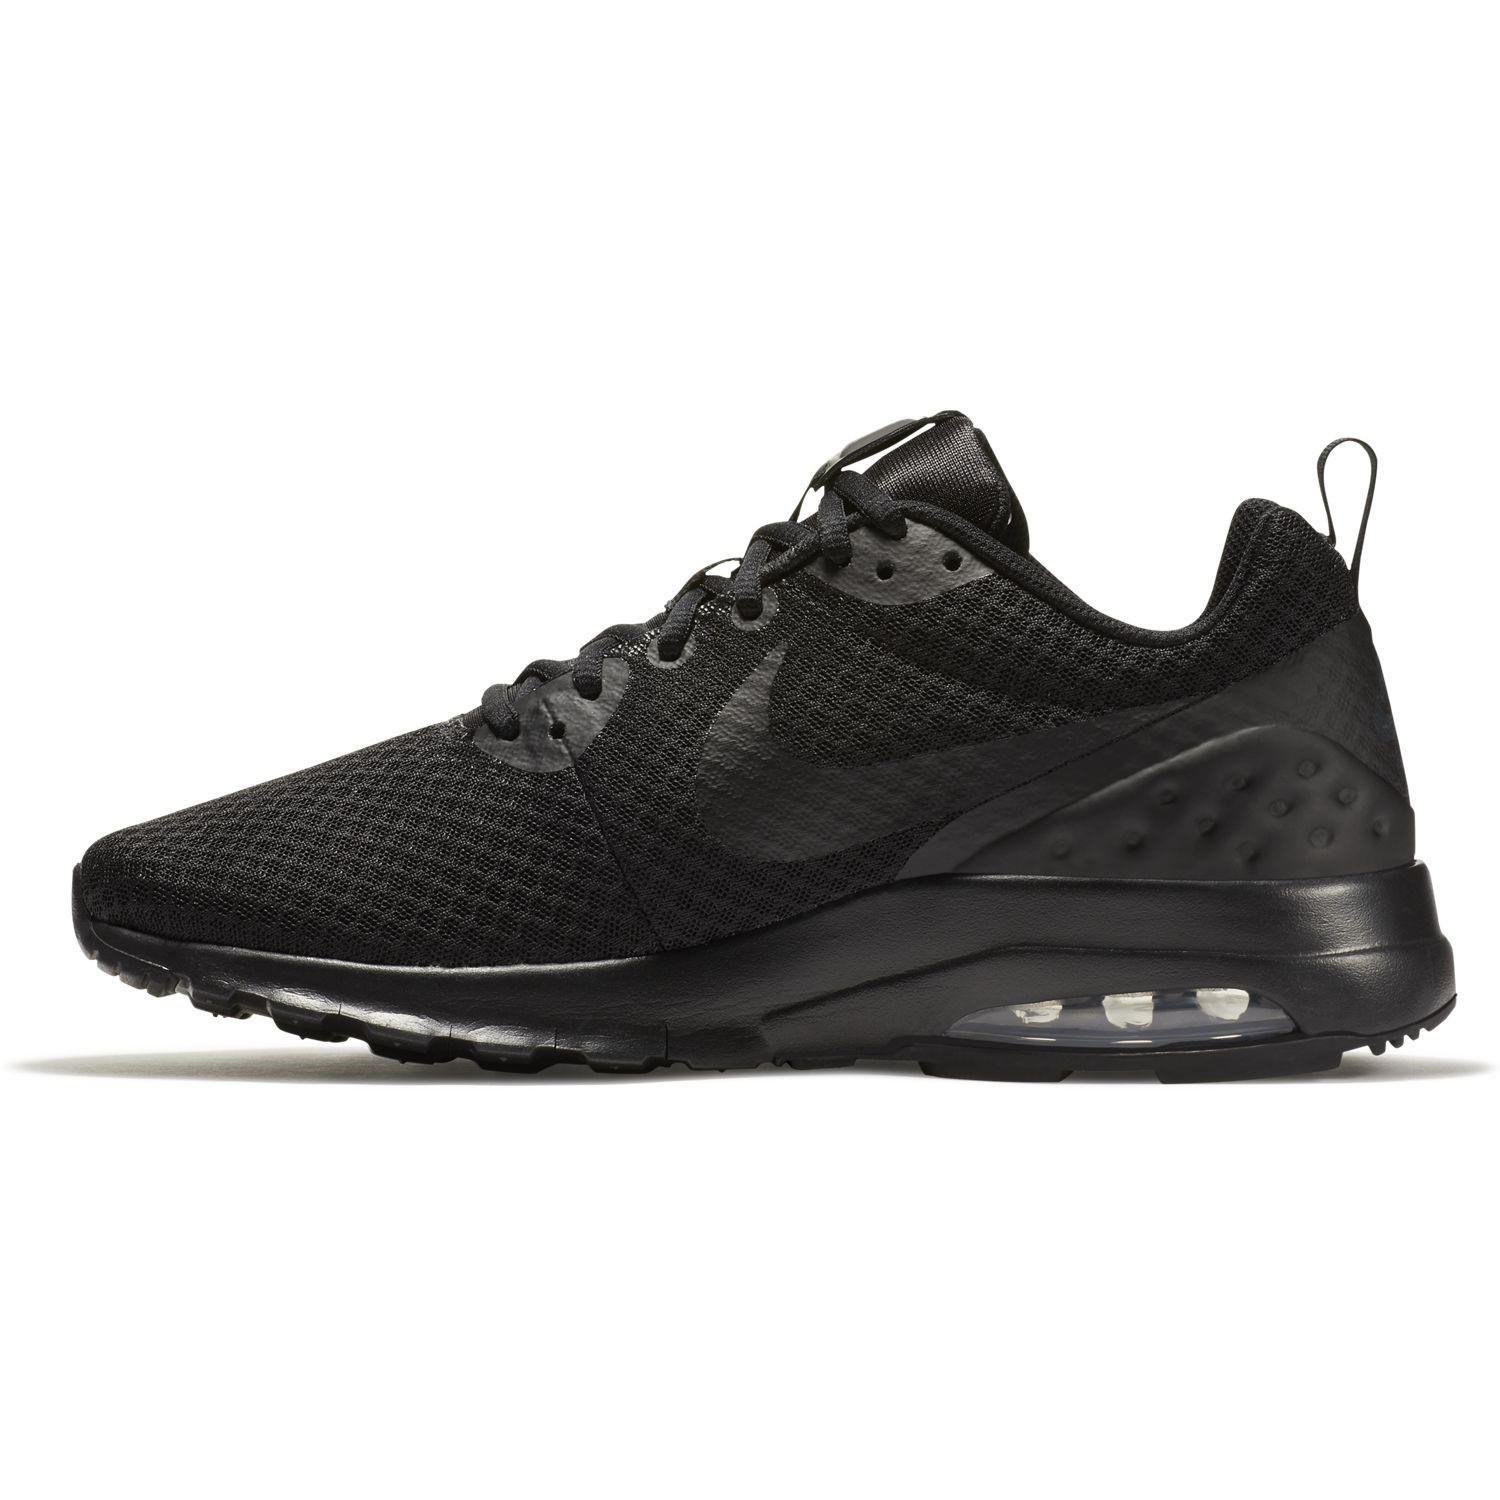 buy online 367aa 59a38 Nike Air Max Motion Low - Mens Casual Shoes - Black Anthracite